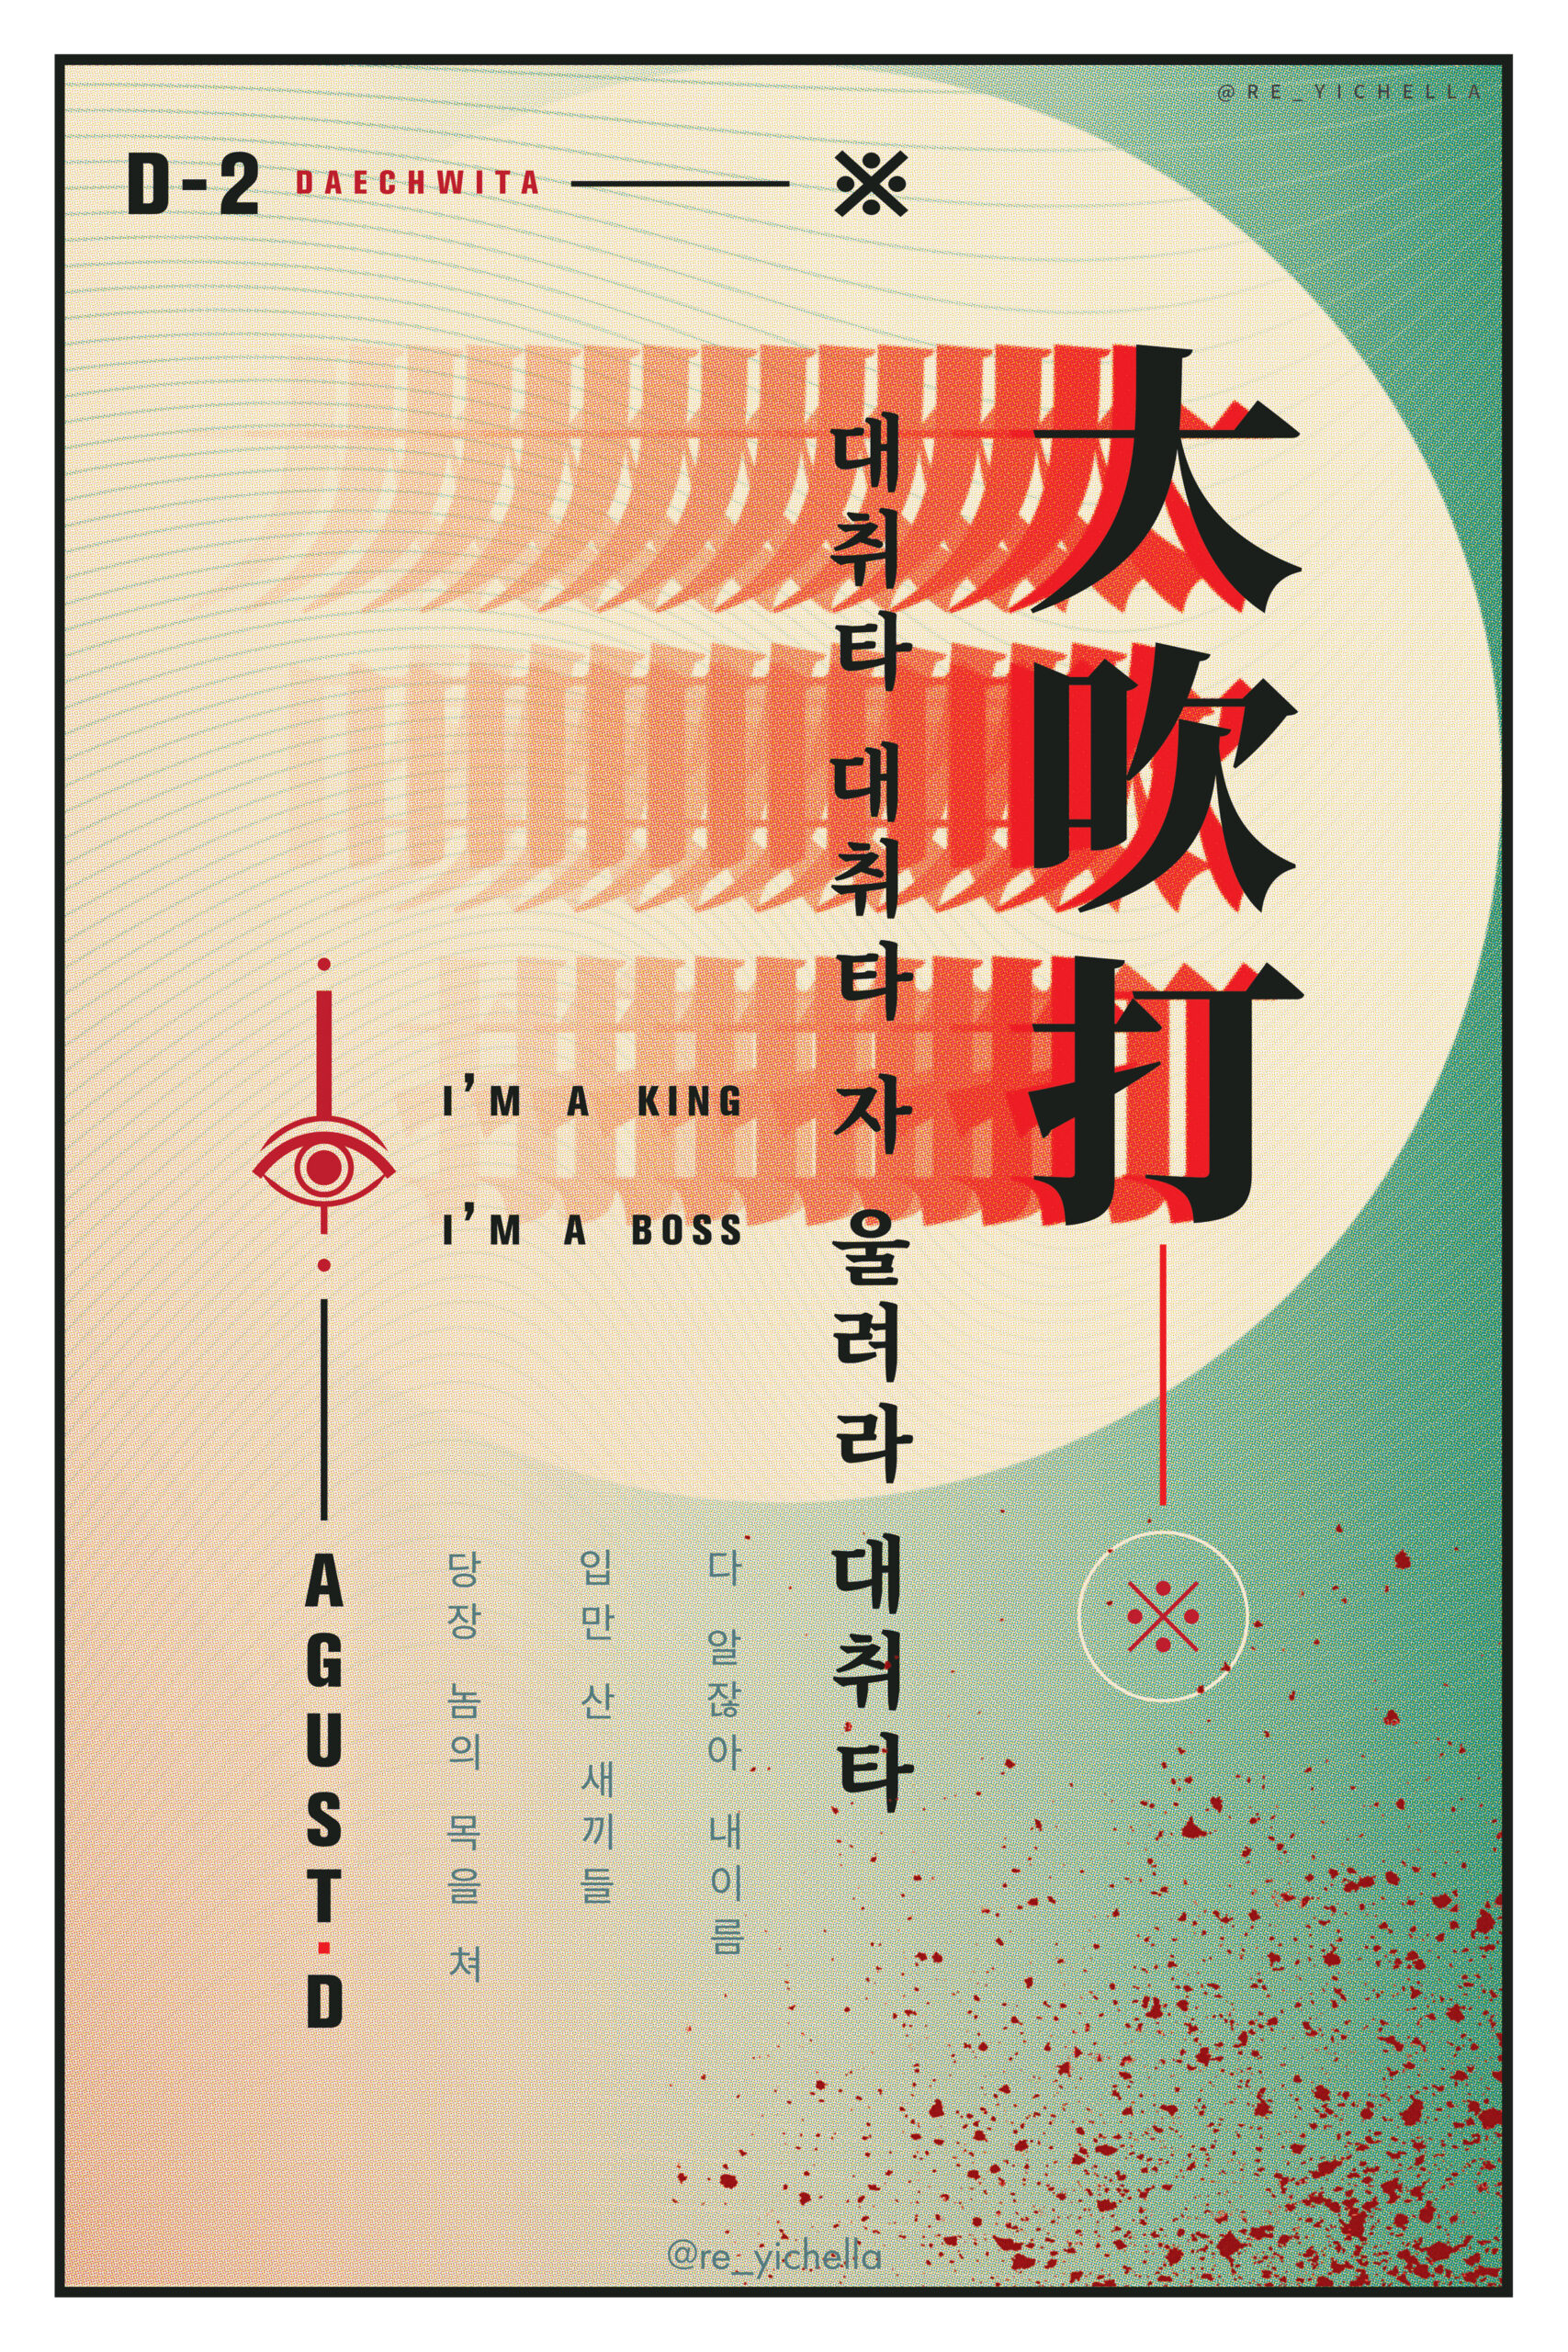 Korean words against an abstract background